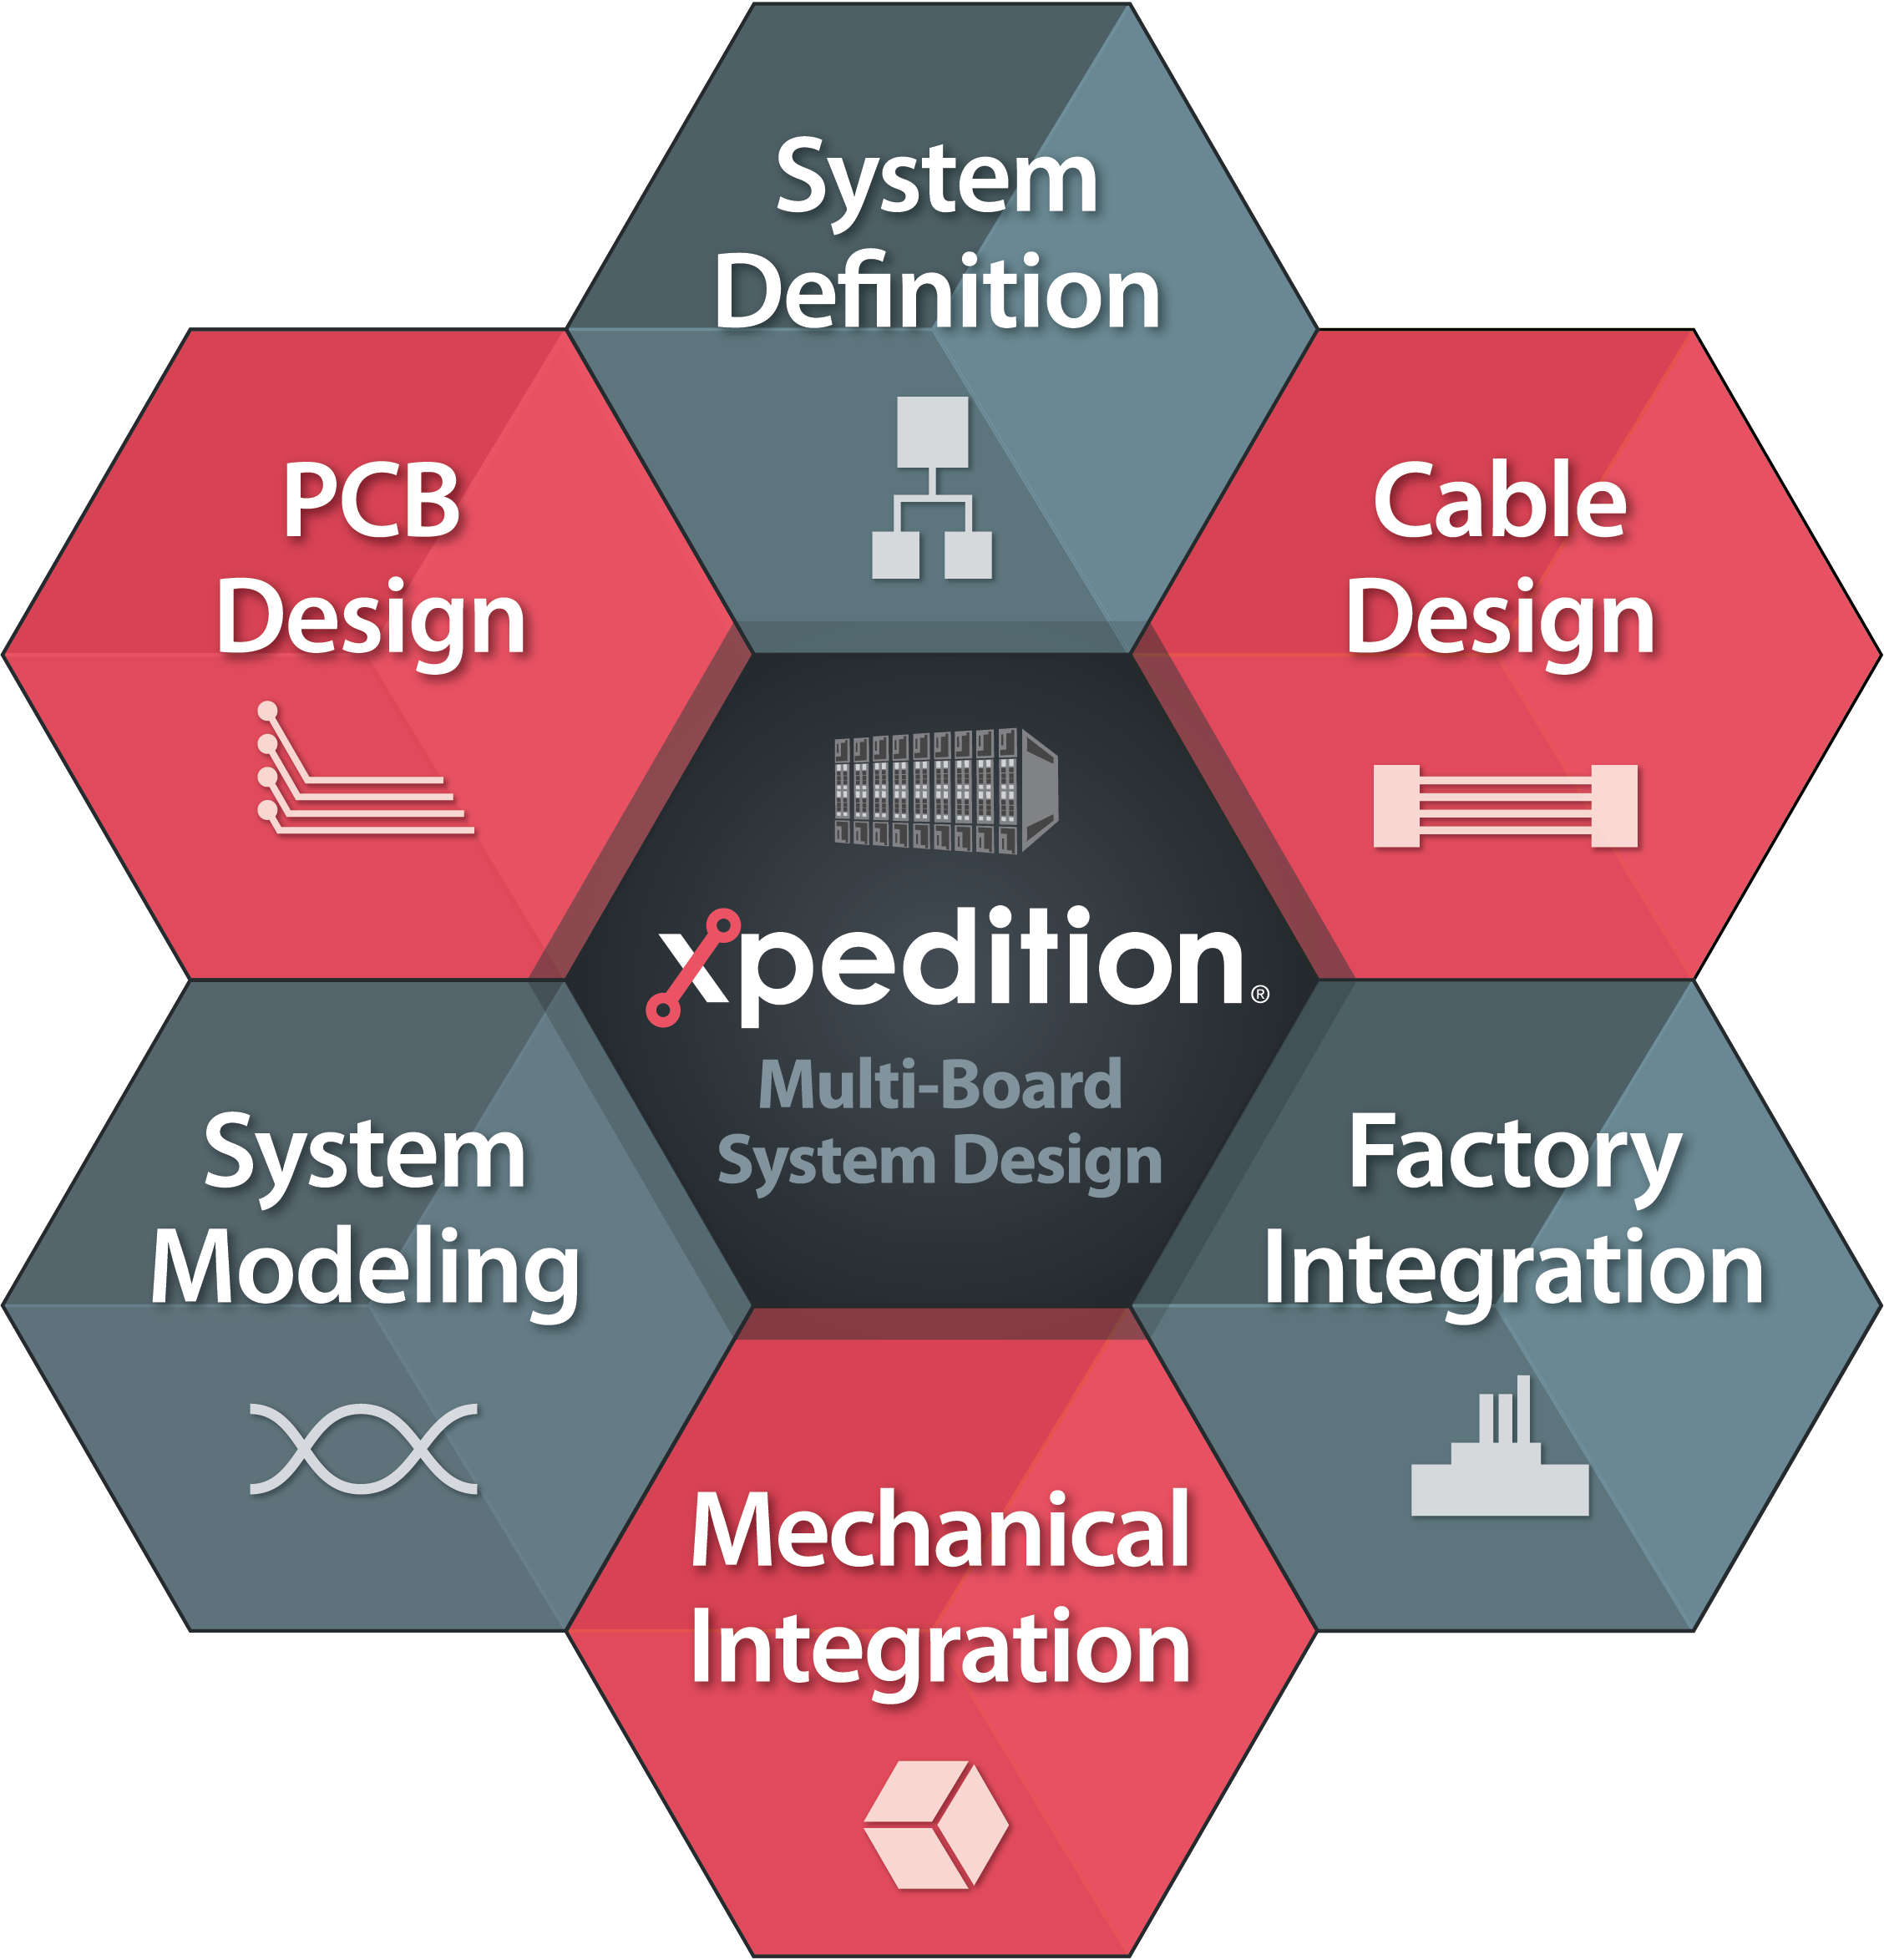 Multi Board Pcb Systems Design Mentor Graphics Designs Signals And Physical Wiring Wires Splices This Results In Poor Collaboration Between Cross Domain Teams Costly Intra System Connectivity Errors Extensive Time Consuming Manual Validation